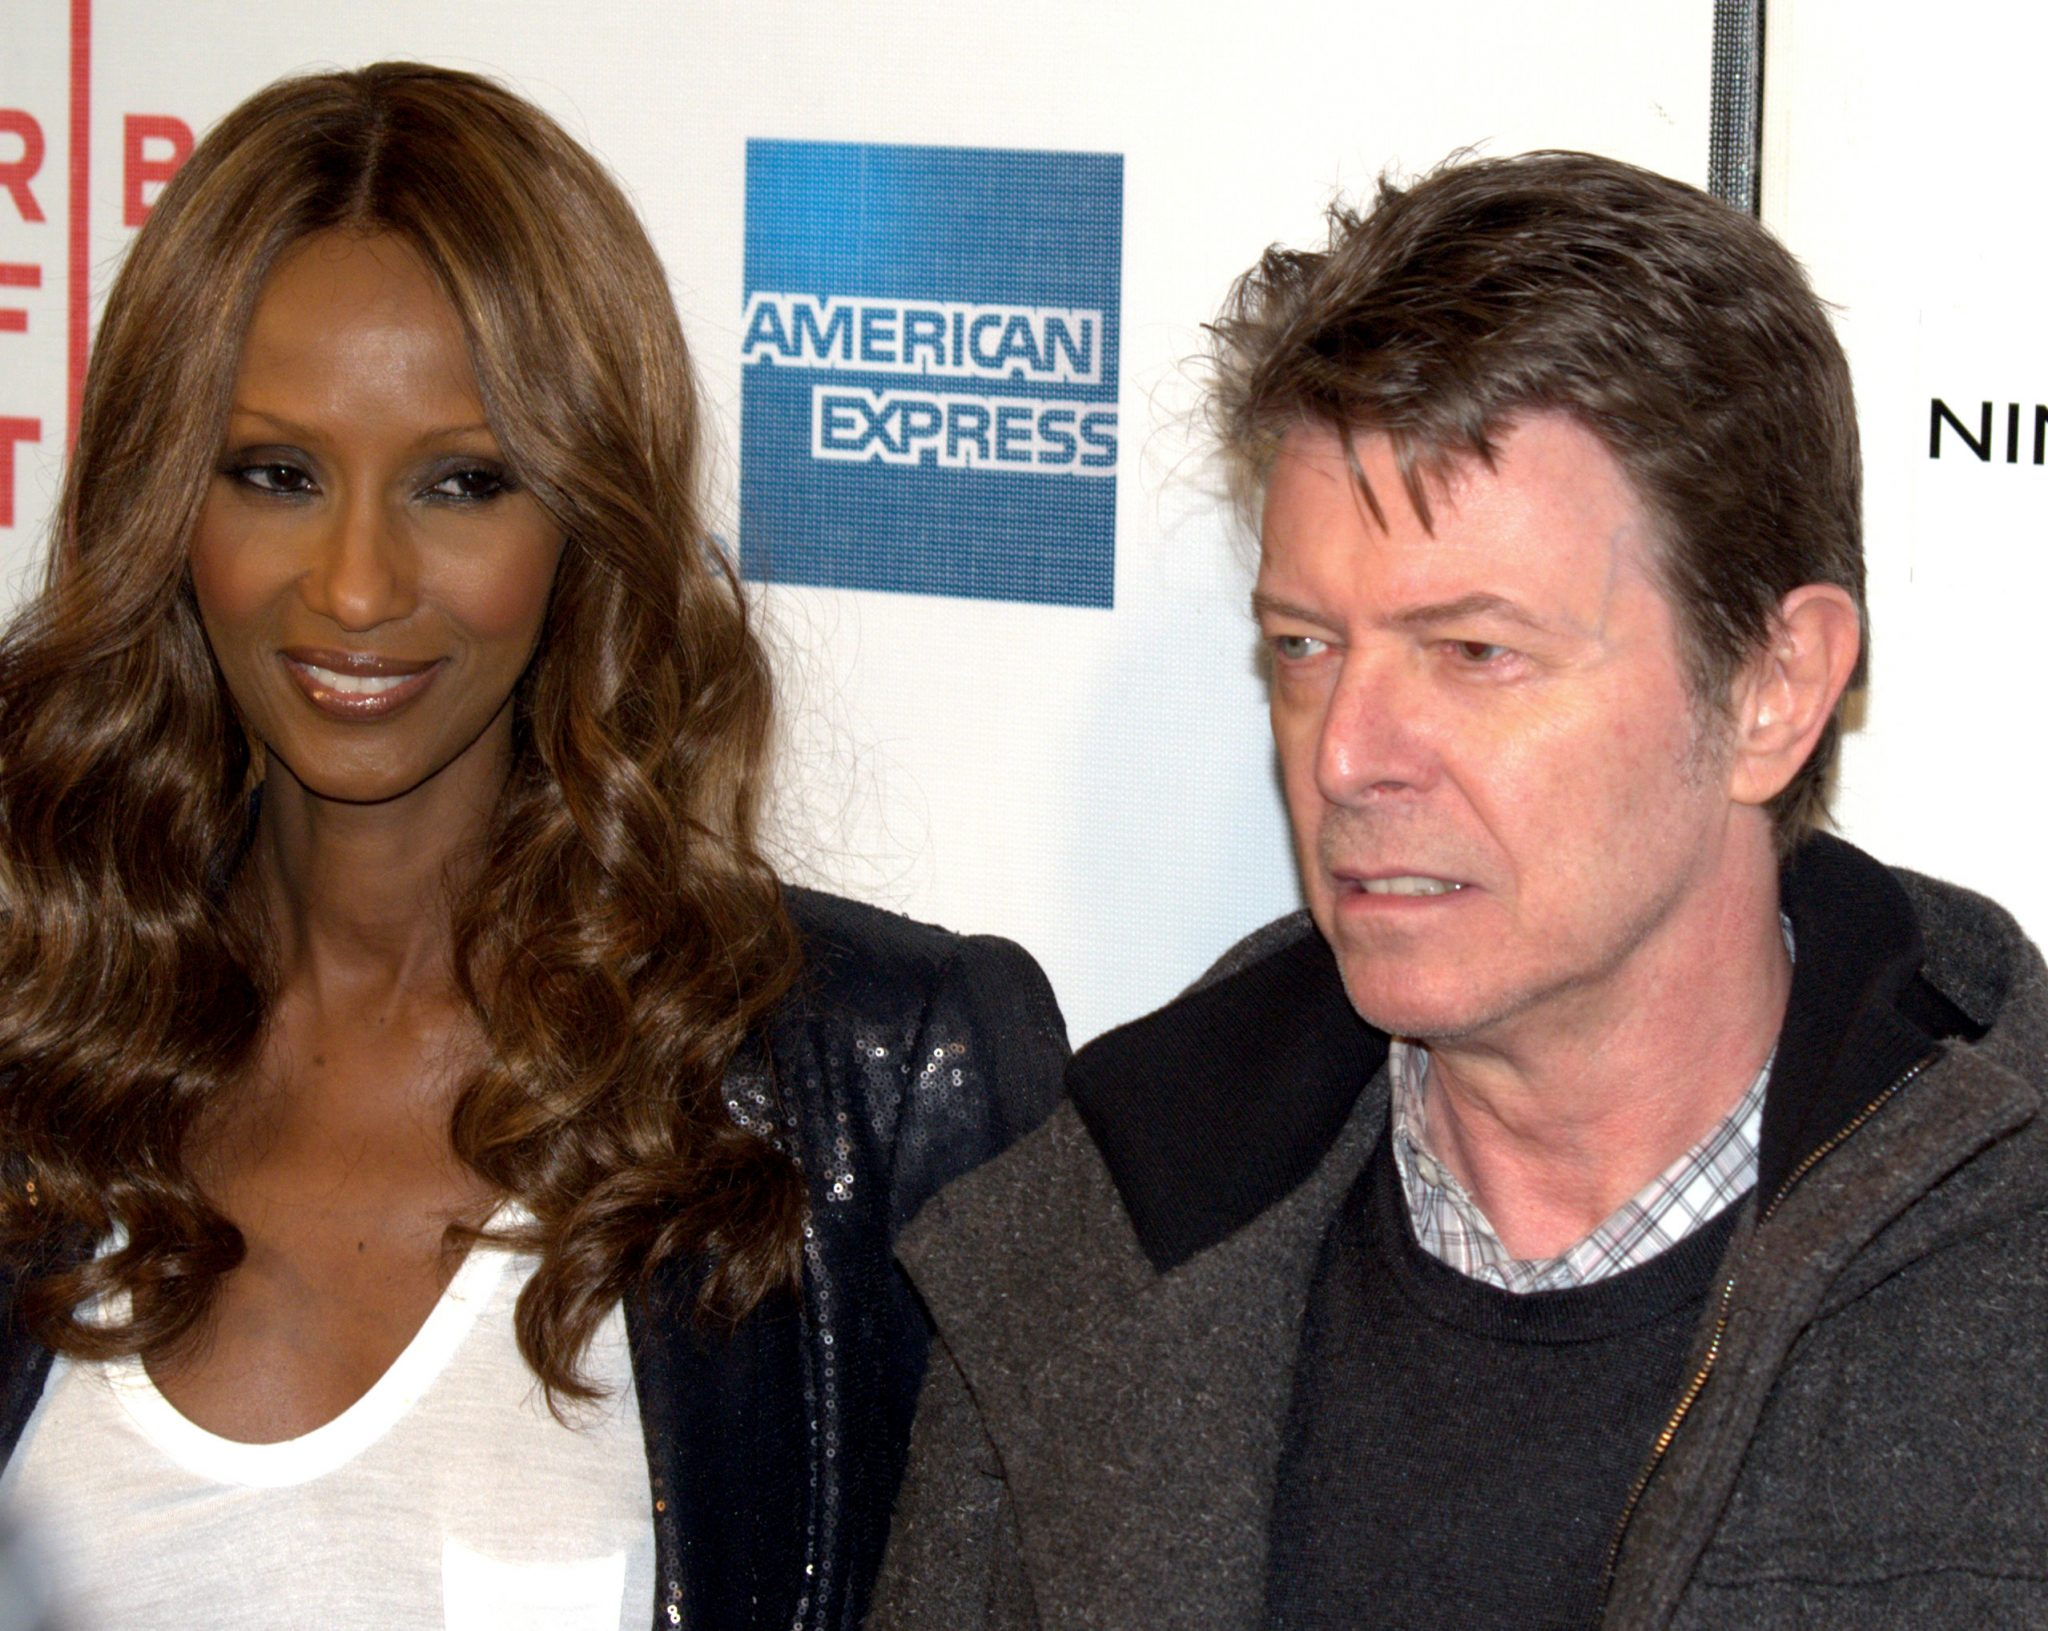 Iman_and_David_Bowie_at_the_premiere_of_Moon[1]